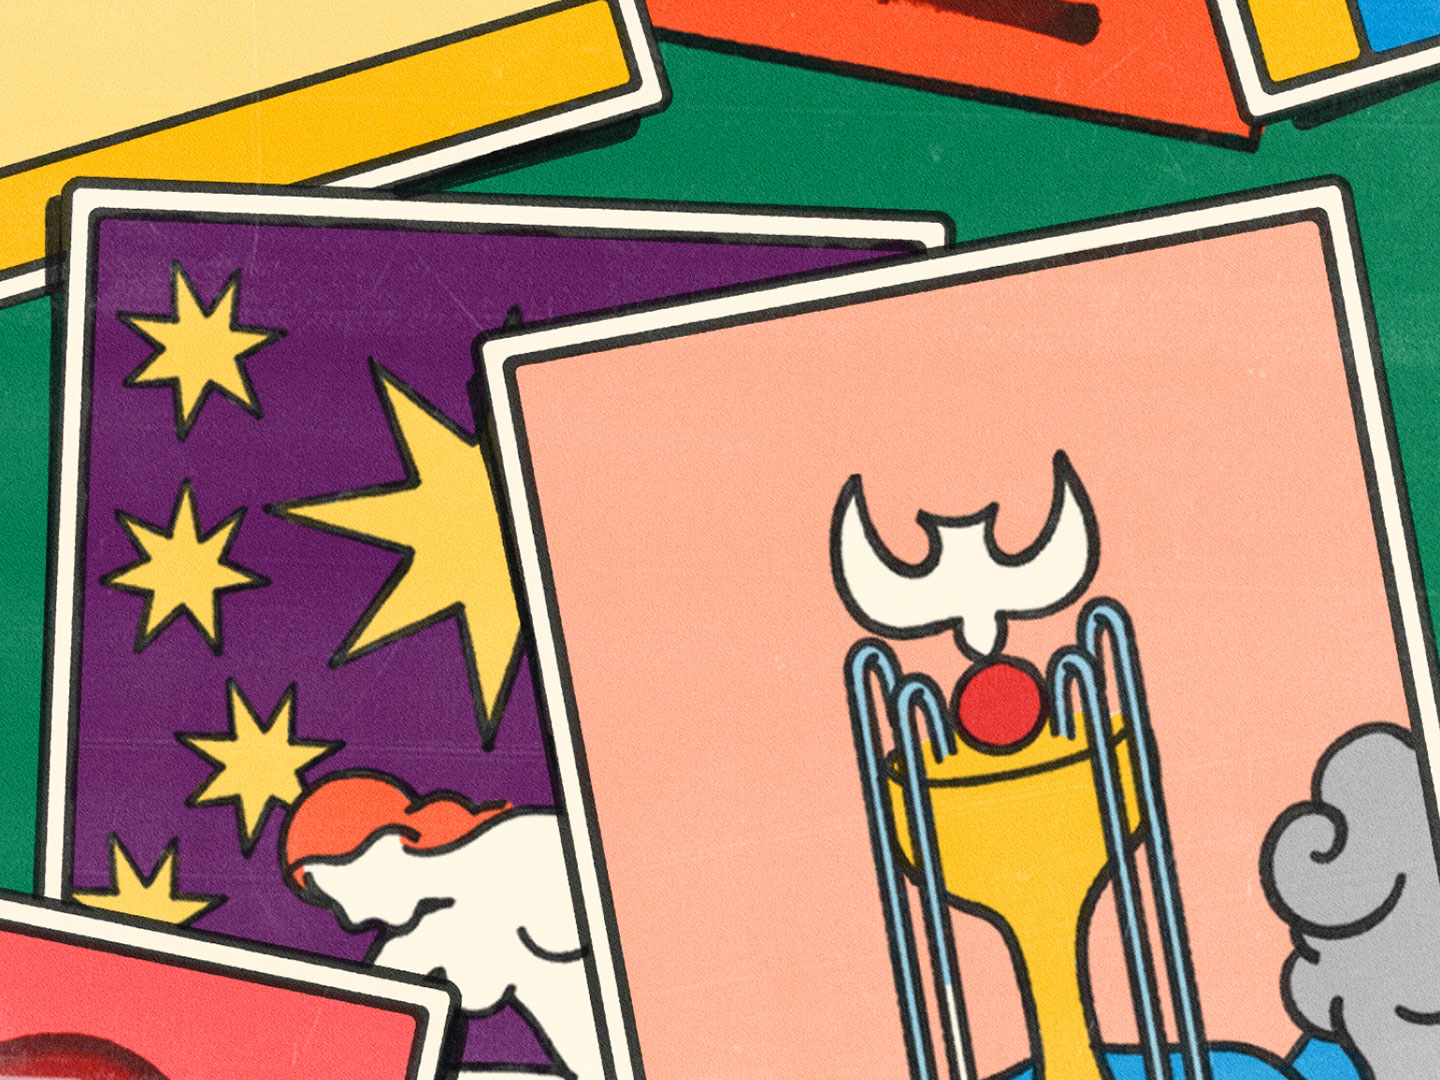 A colourful illustration of tarot cards.